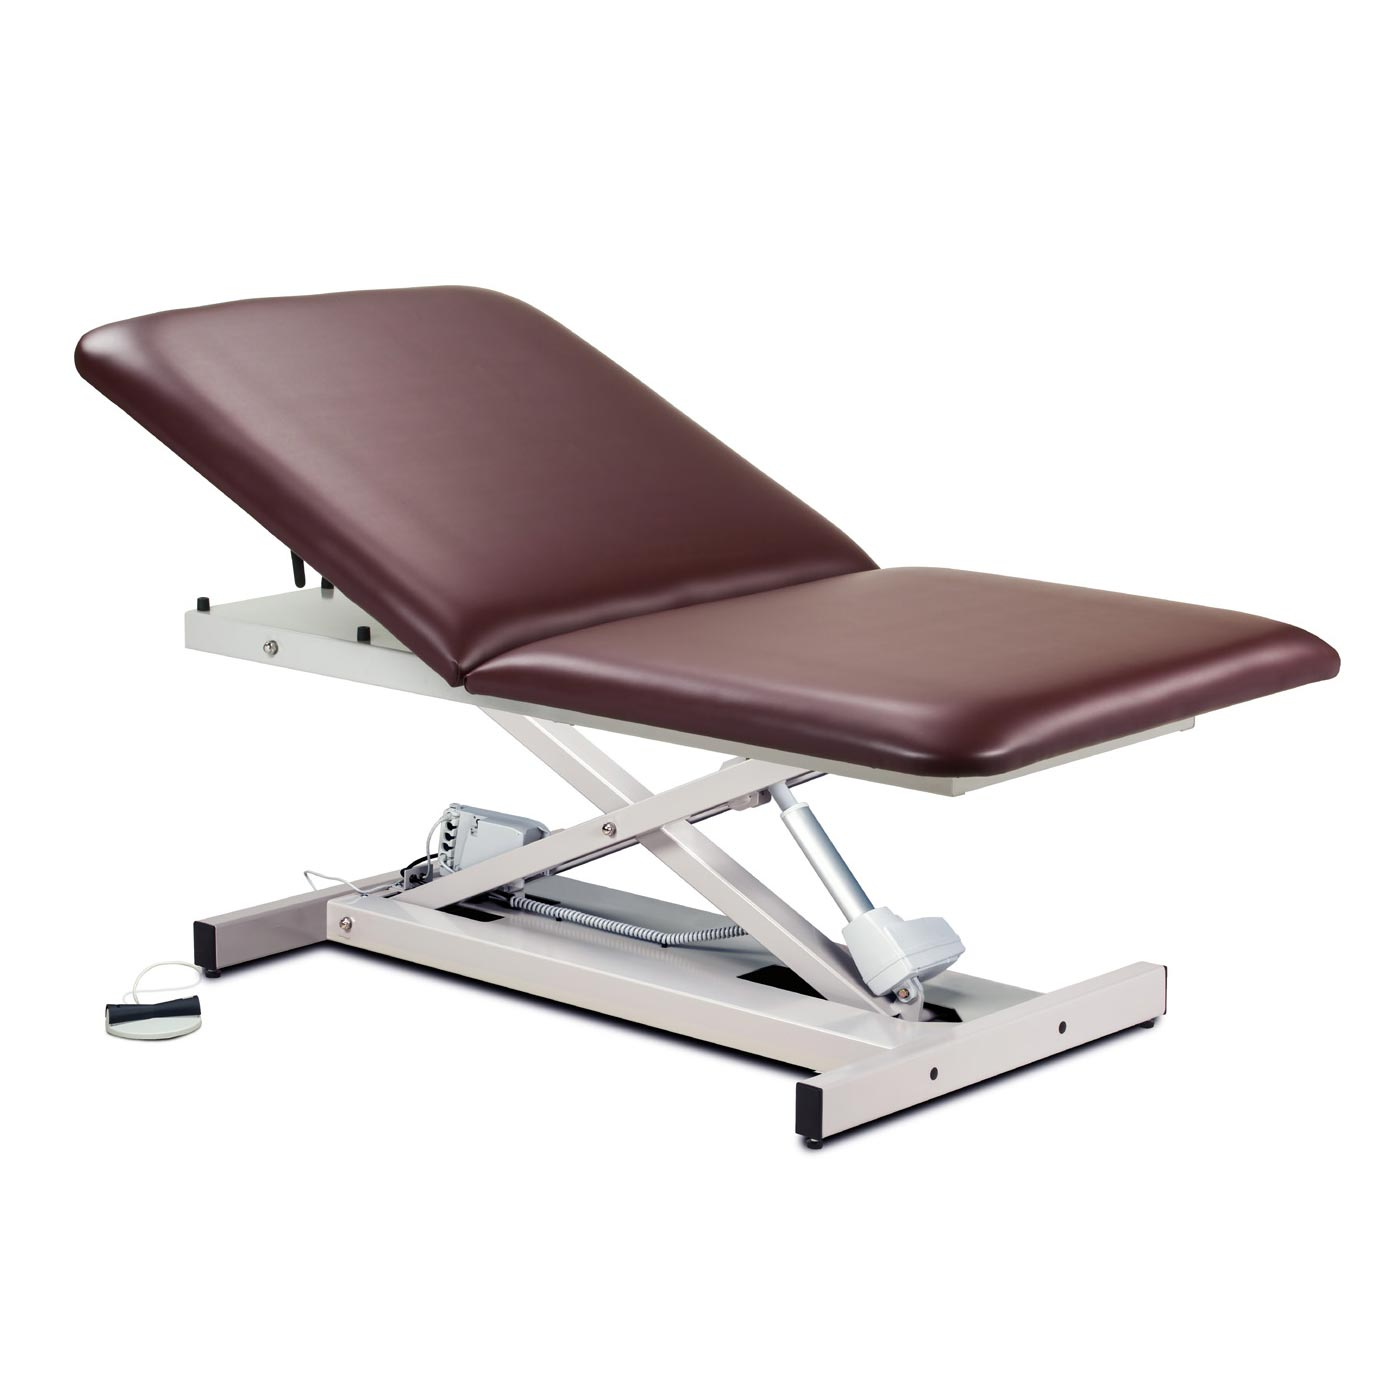 Clinton open base, extra wide, bariatric, power table with adjustable backrest